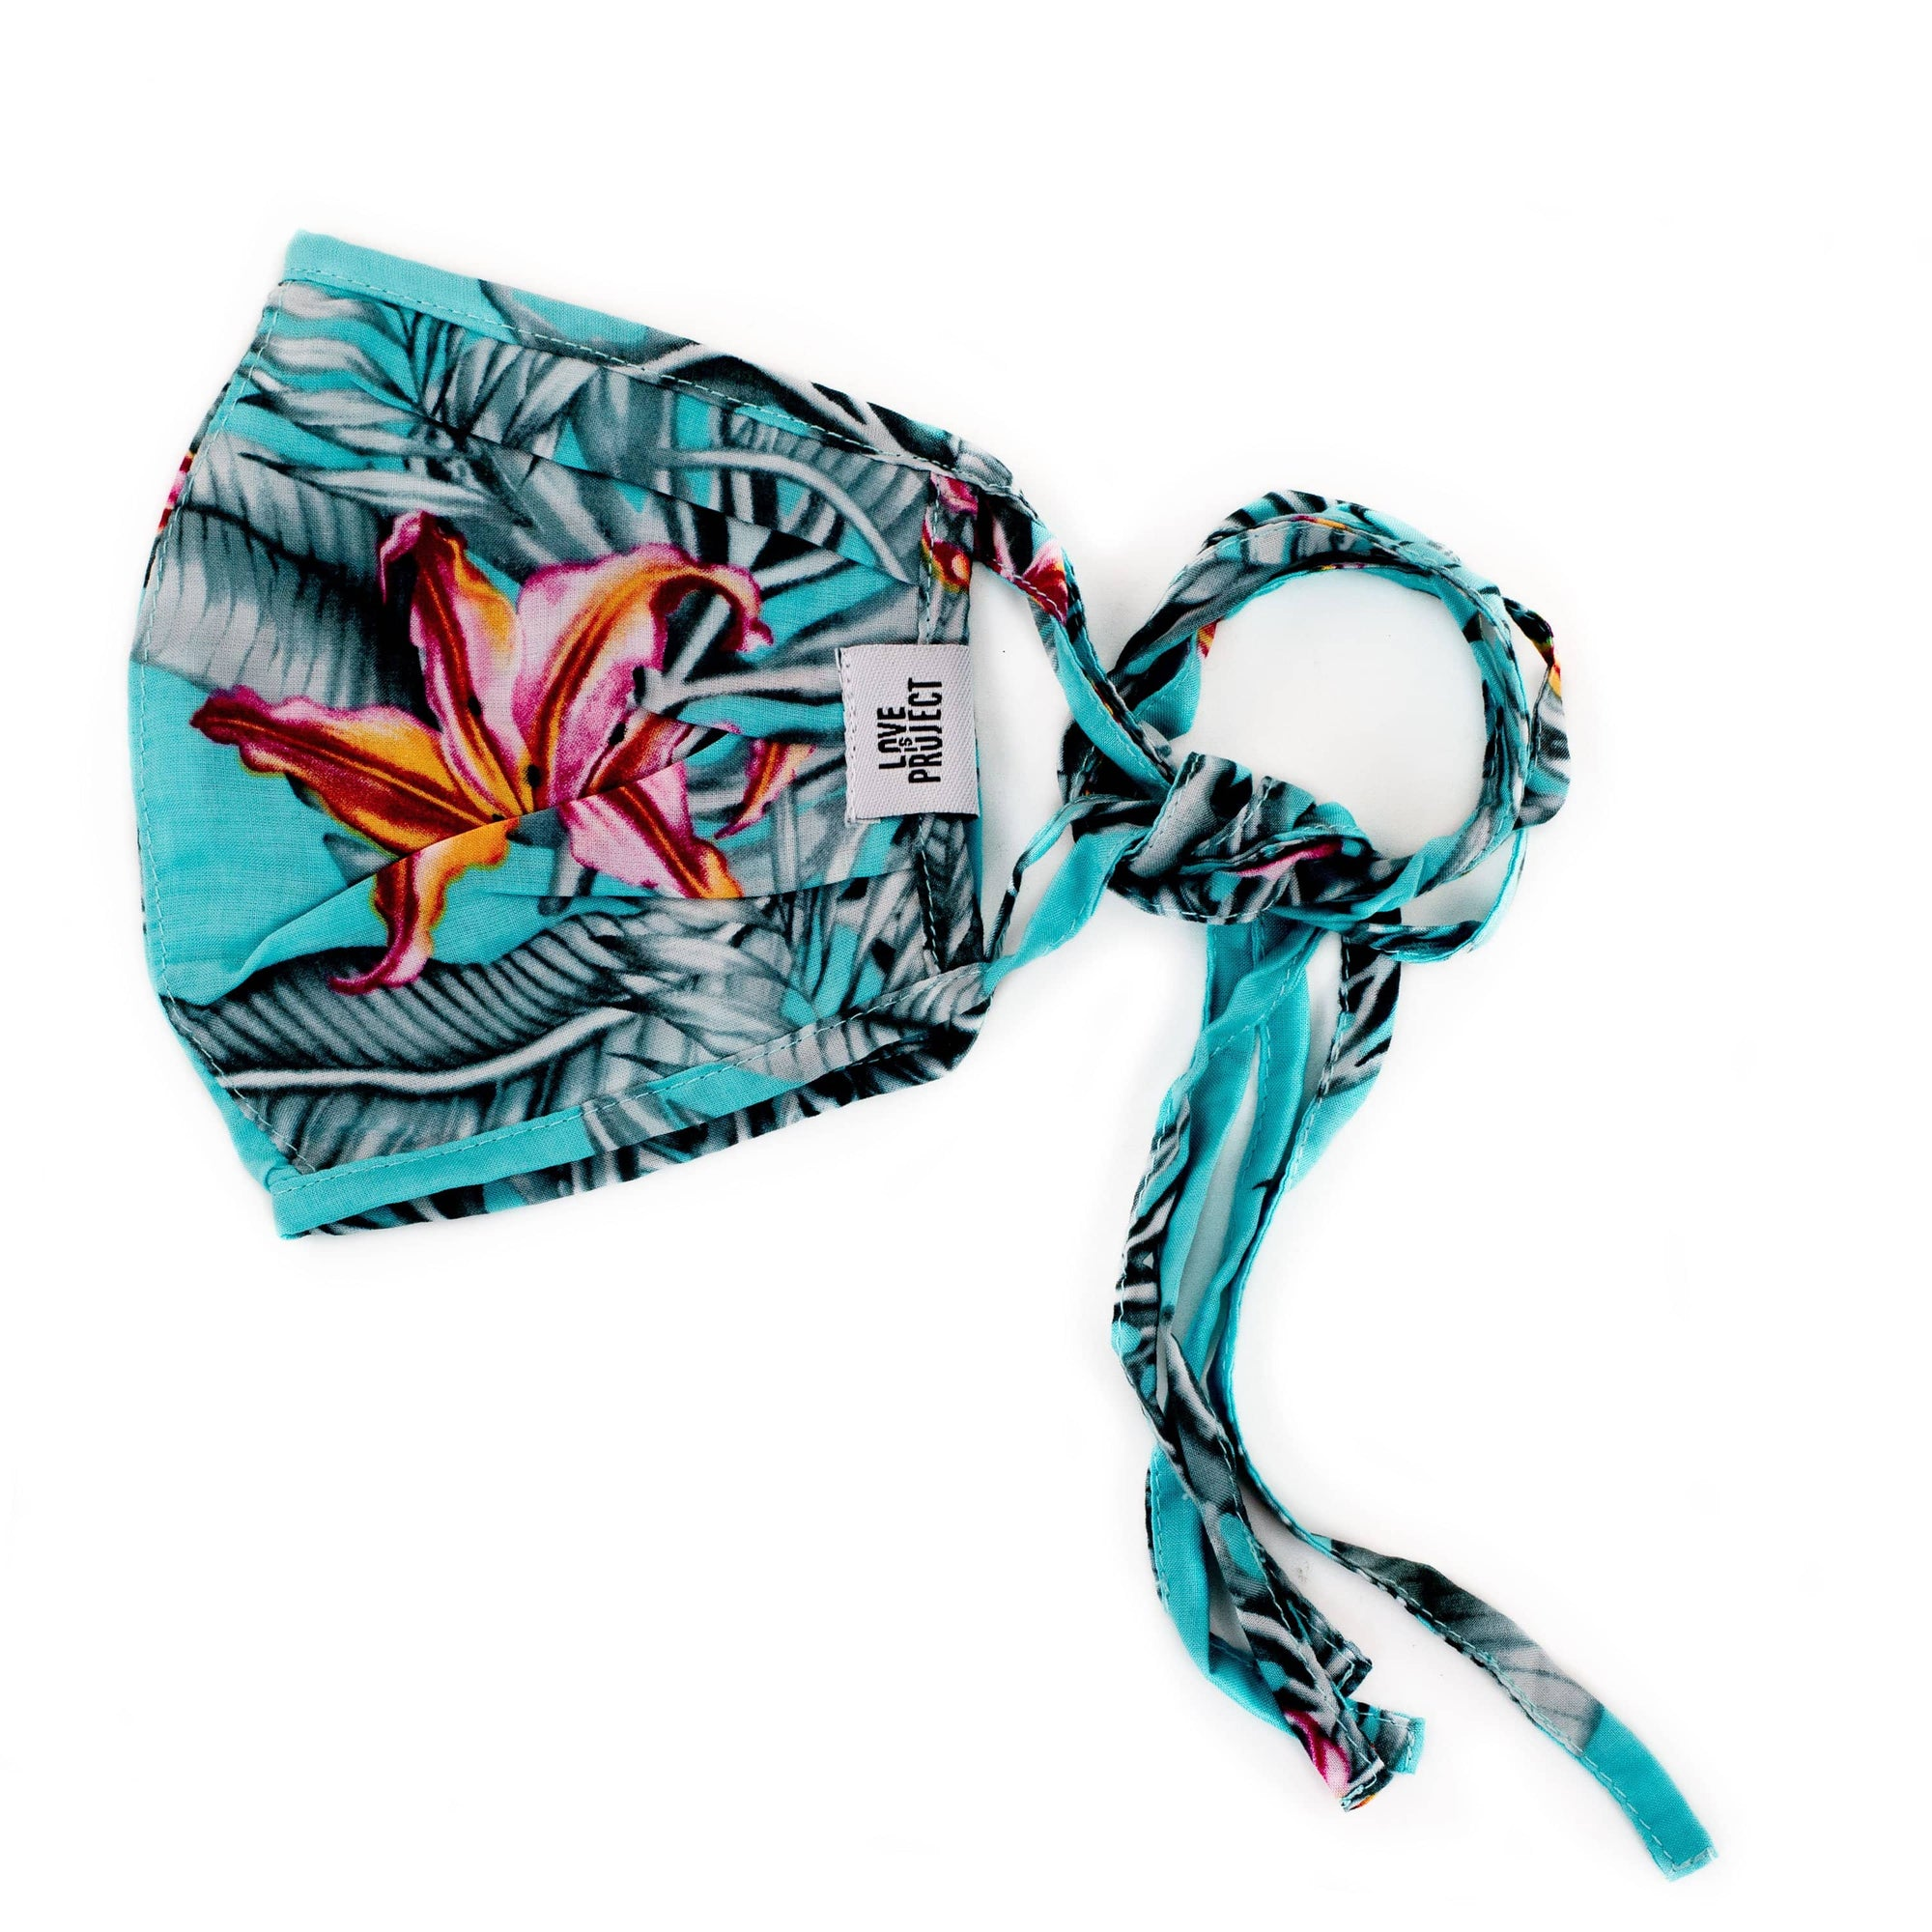 Aloha Tie Face Mask - Turquoise - Love Is Project